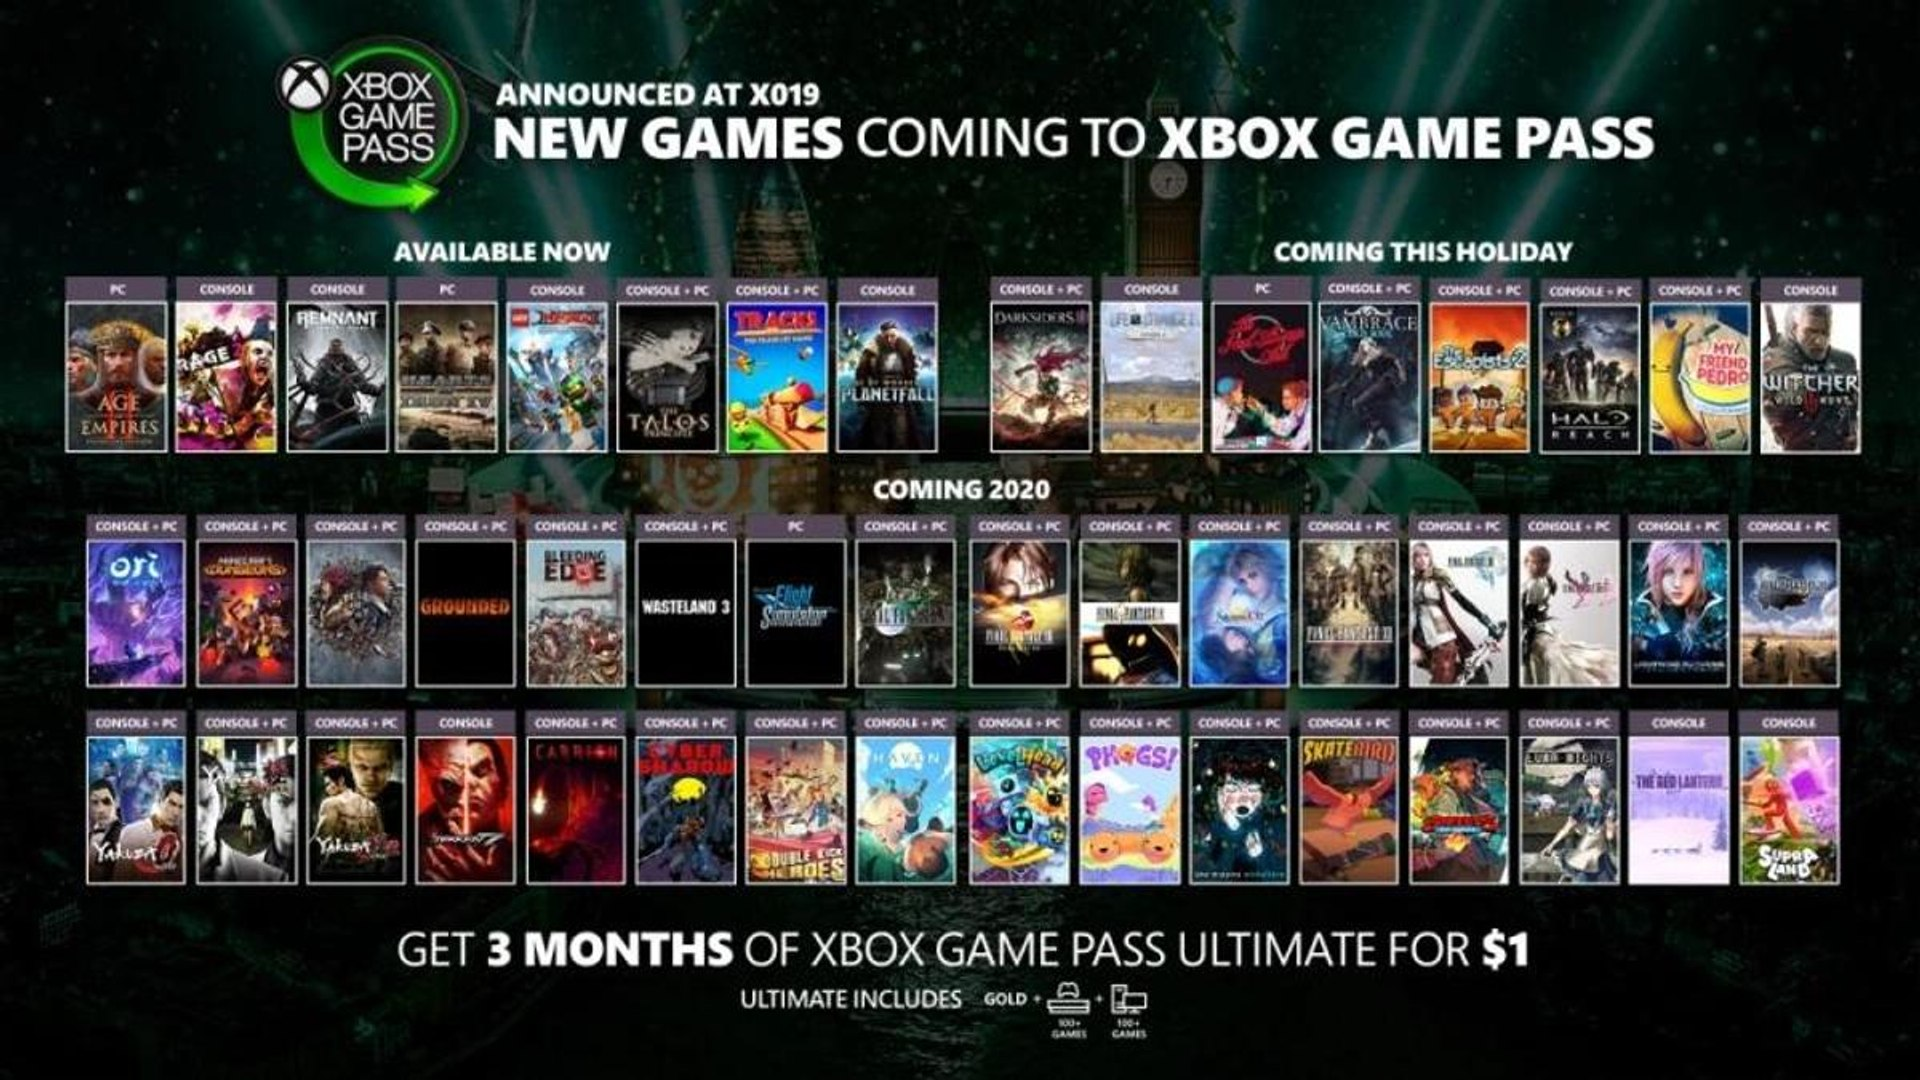 Xbox Games With Gold February 2020.Xbox Game Pass Announcing New Games X019 Official Xbox Pc Games 2019 2020